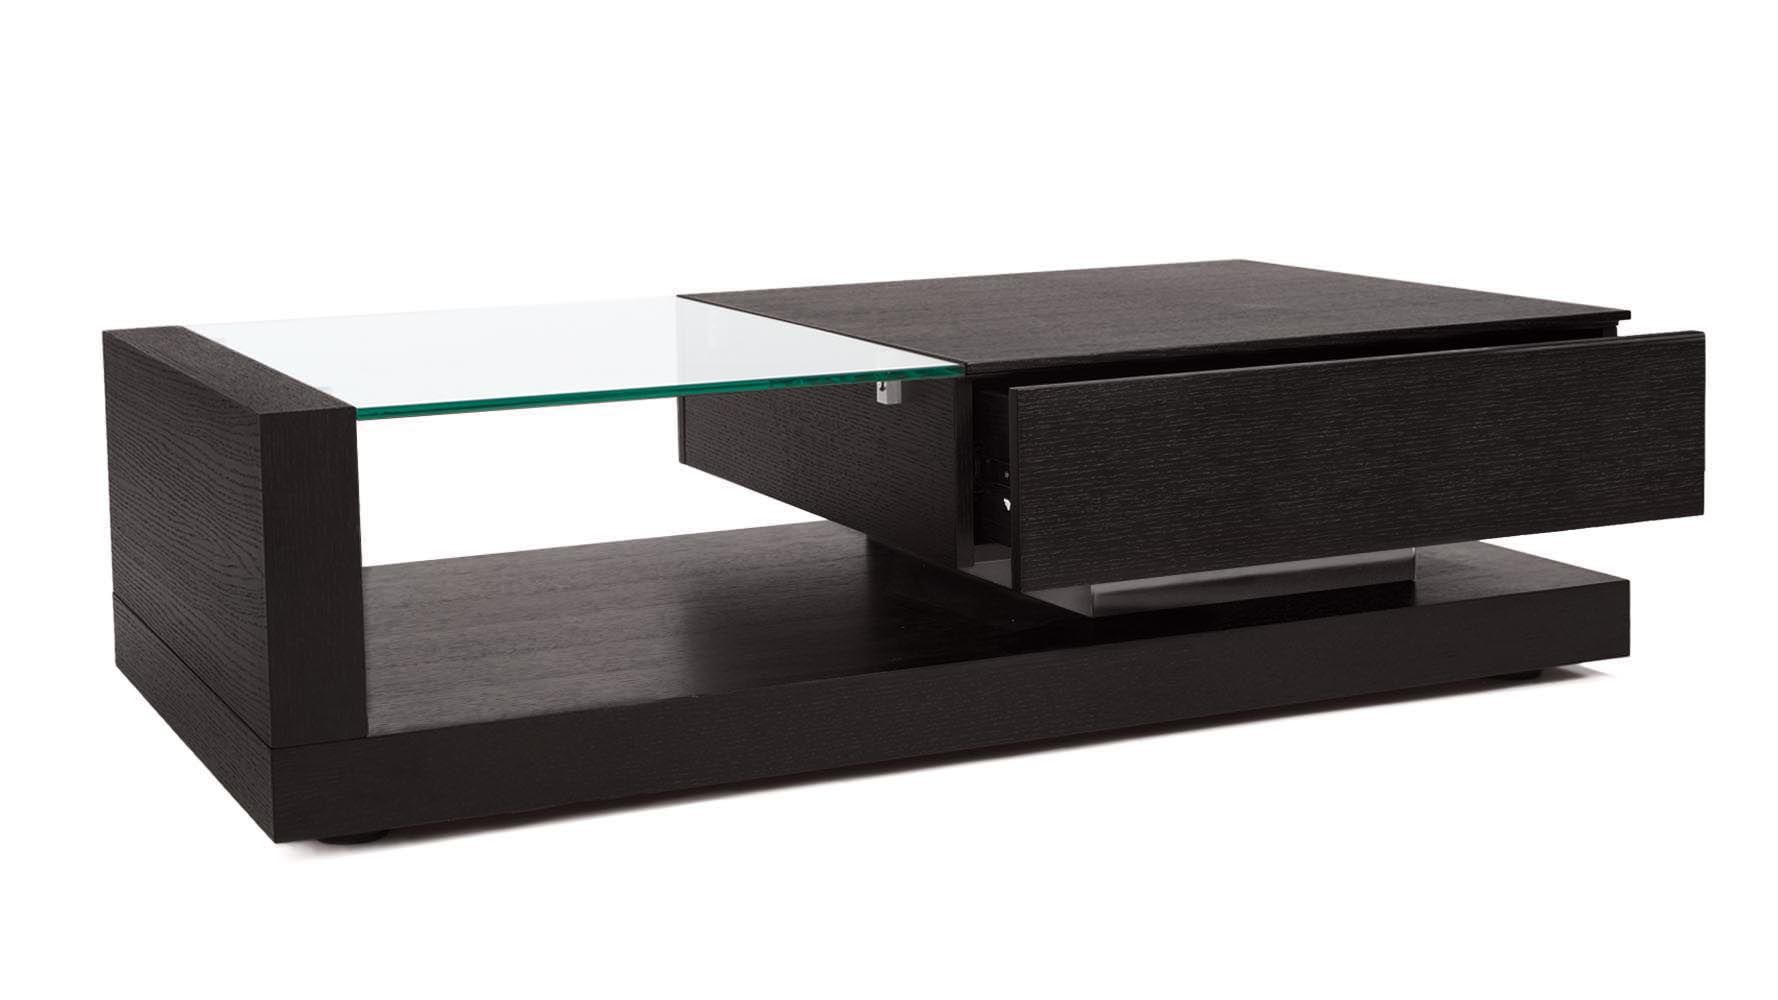 Etta 51 Coffee Table Modern Coffee Tables Contemporary Coffee Table [ 1000 x 1778 Pixel ]